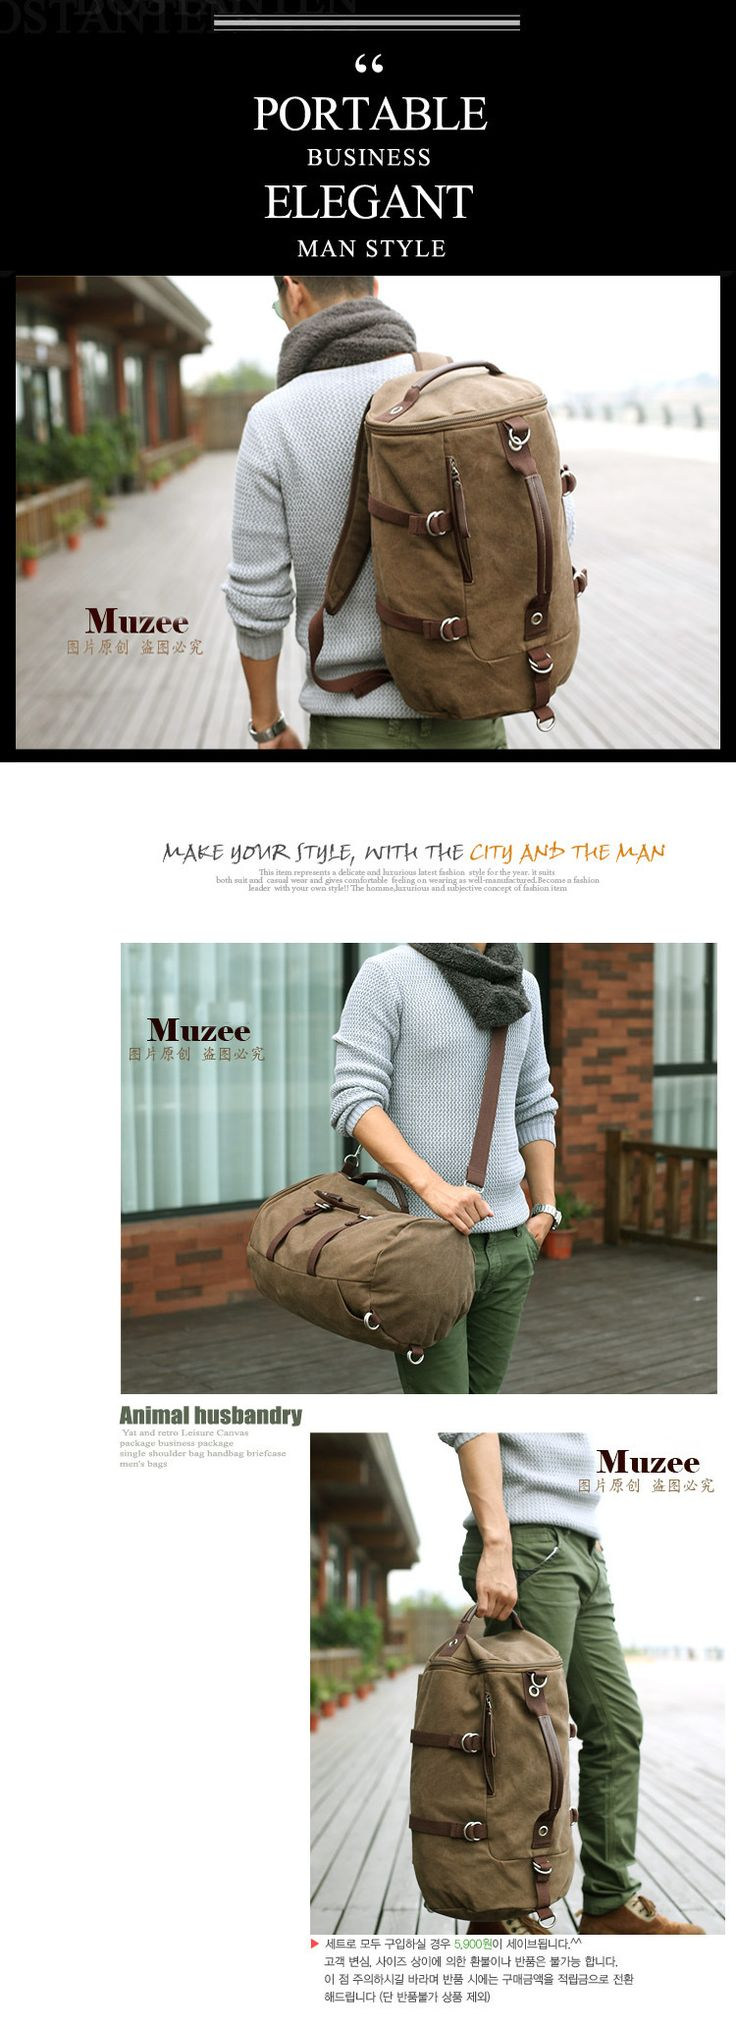 Man Canvas Cow Leather Bags,backpack